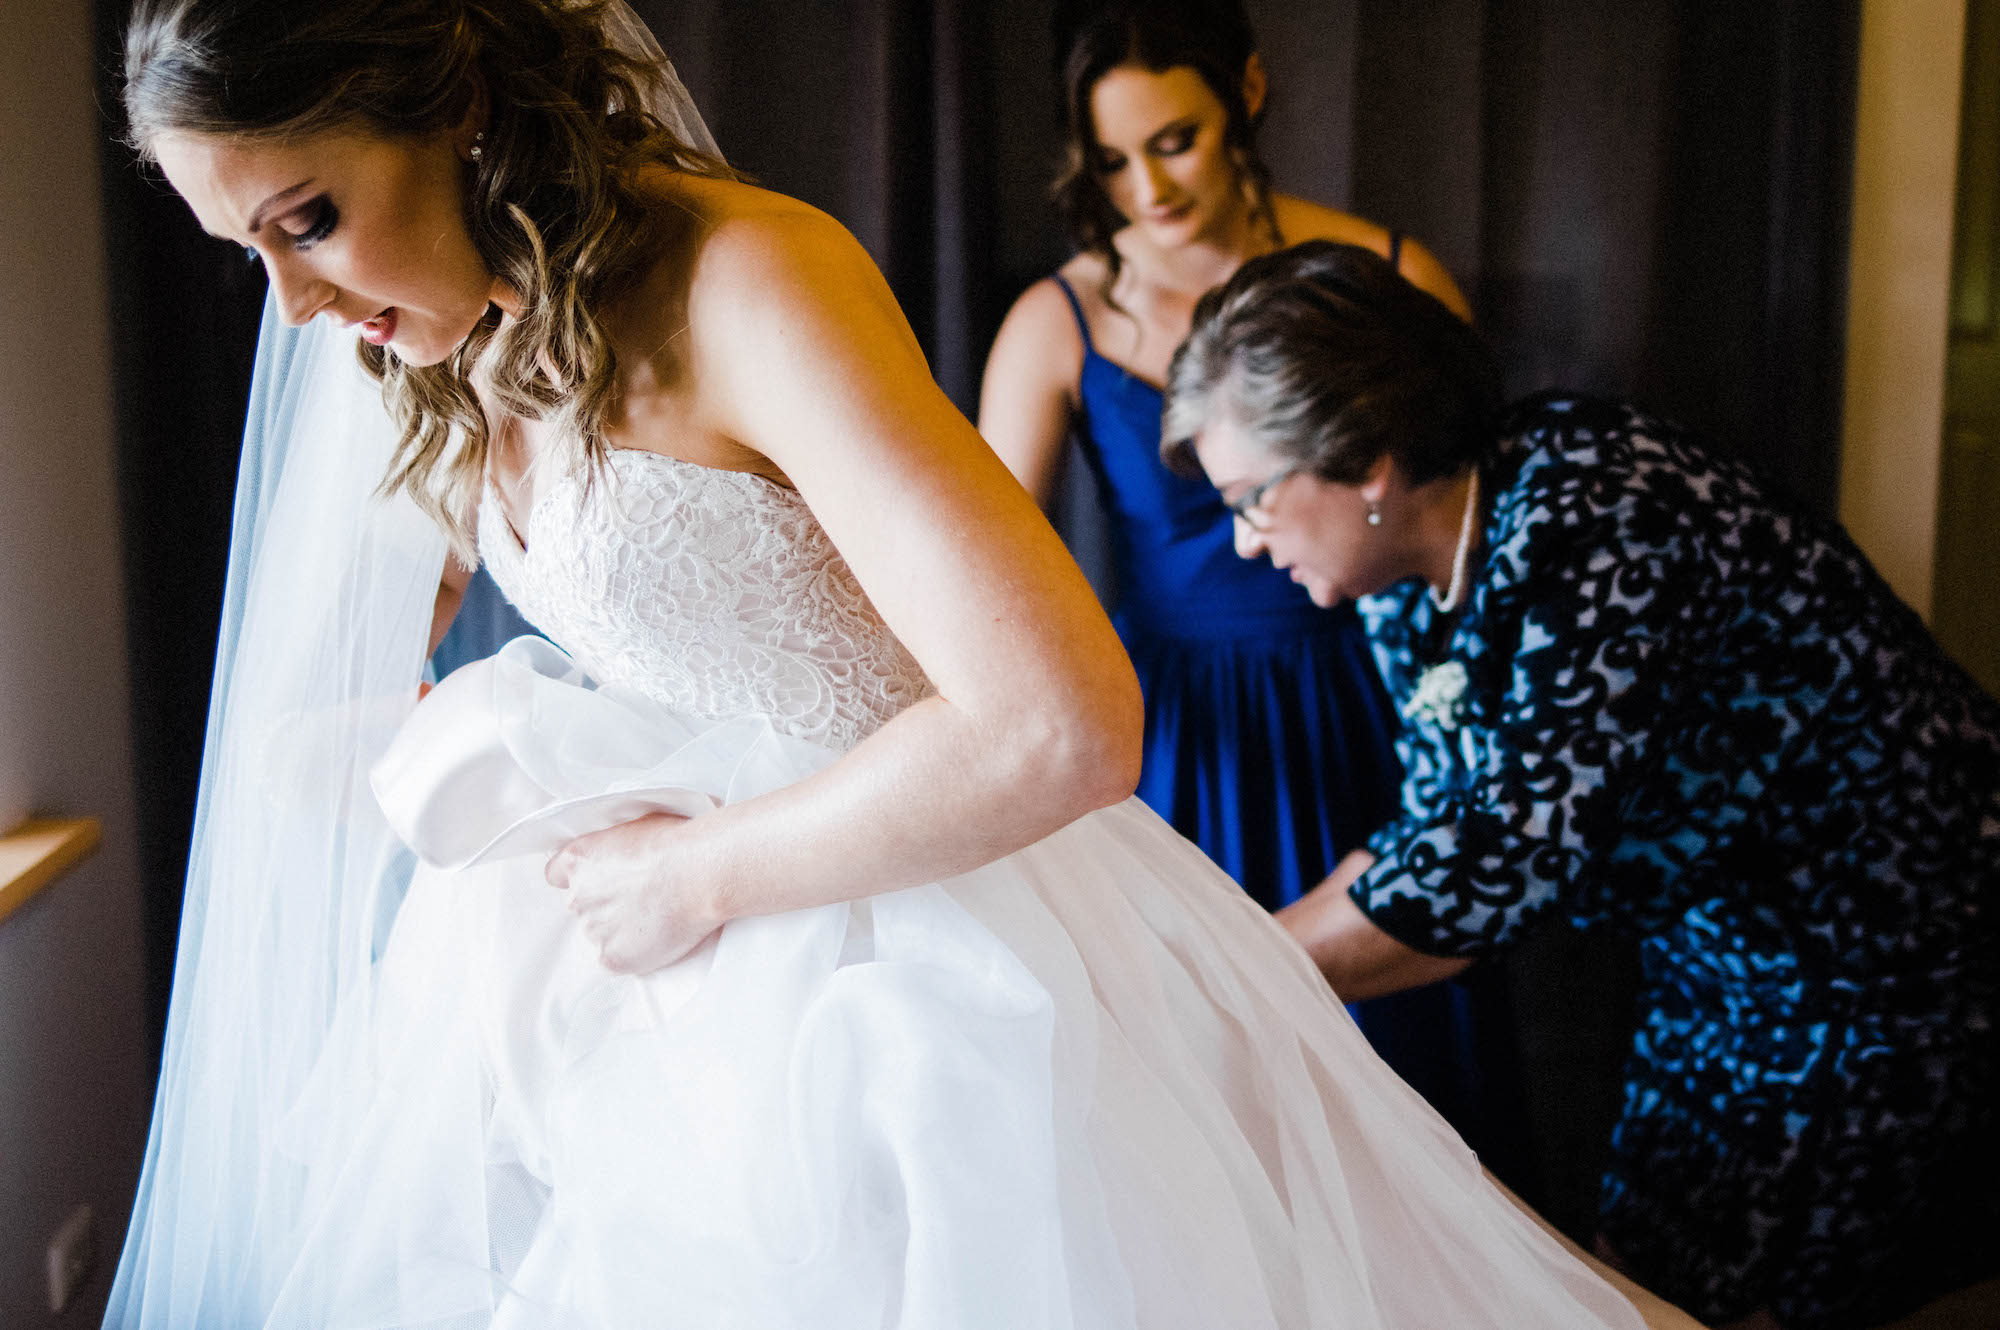 The bride getting dressed at home the morning of her Byford wedding.